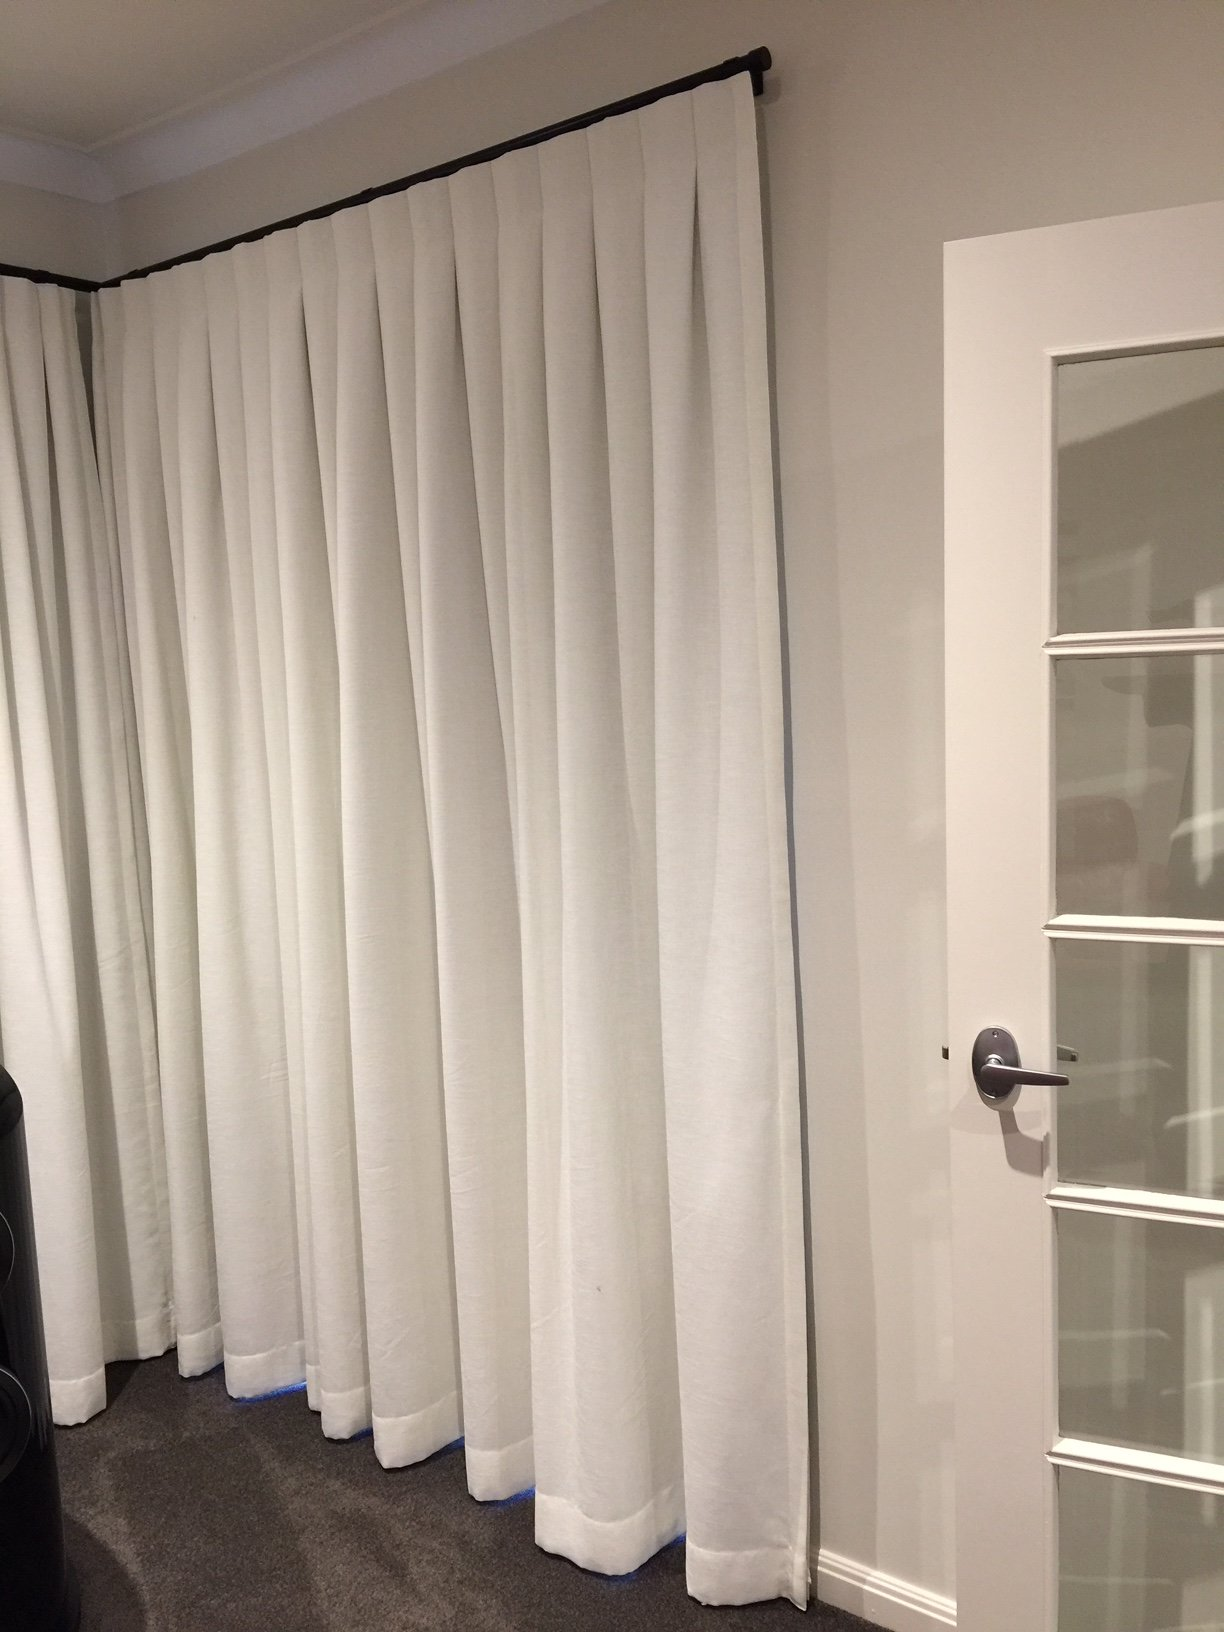 curtains absorbing living around sound myhomedesign room curtain beautiful cancelling world window blinds bed full canceling noise ideas the treatments picture reduction marvelous of size win